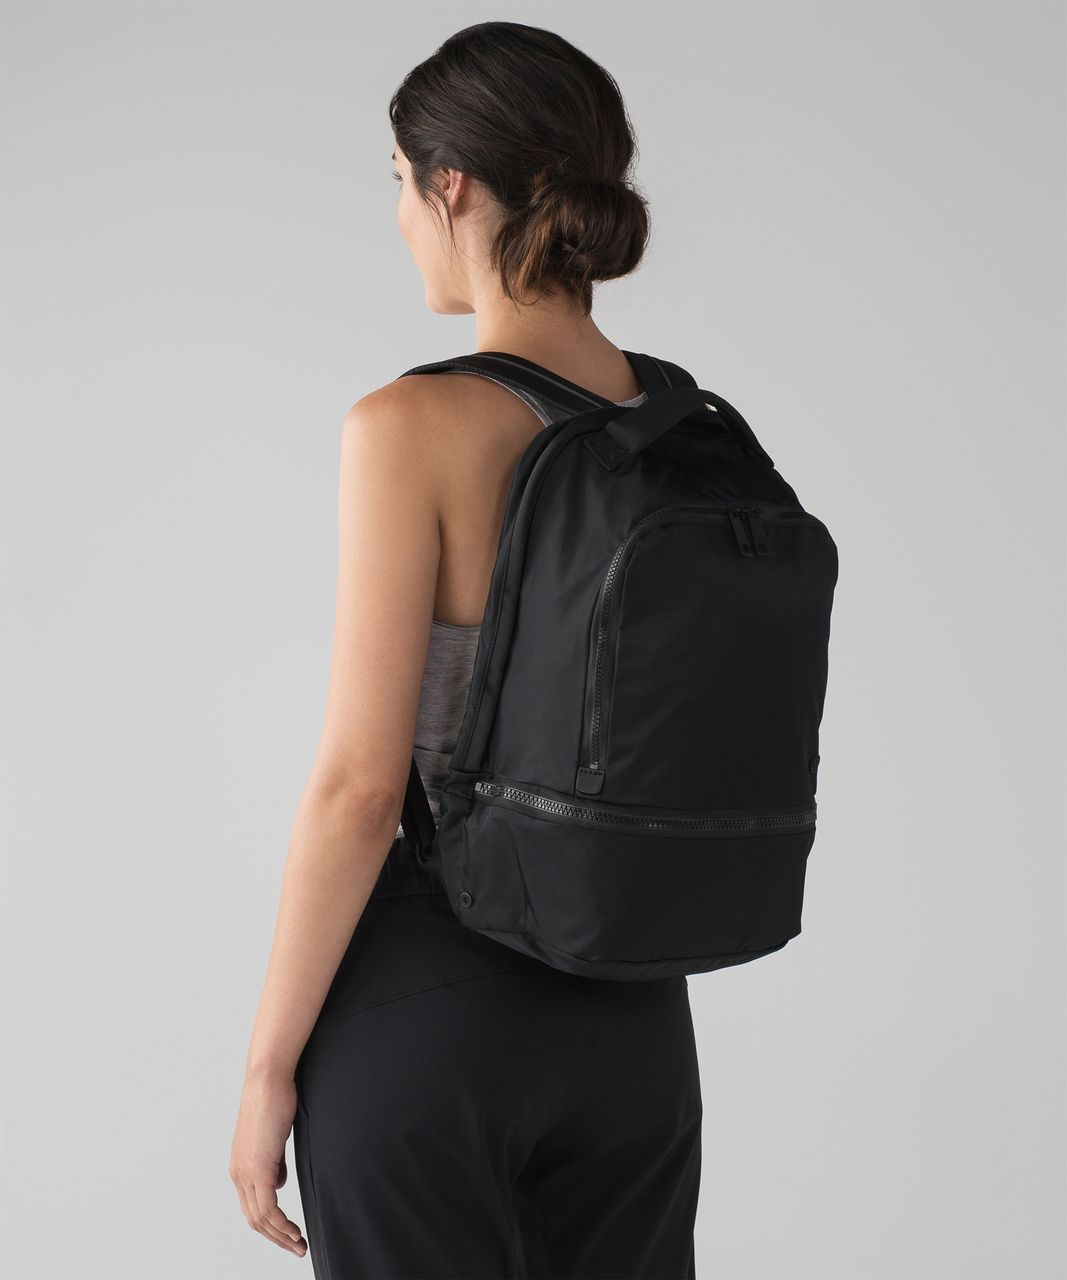 Lululemon City Adventurer Backpack (21L) - Black